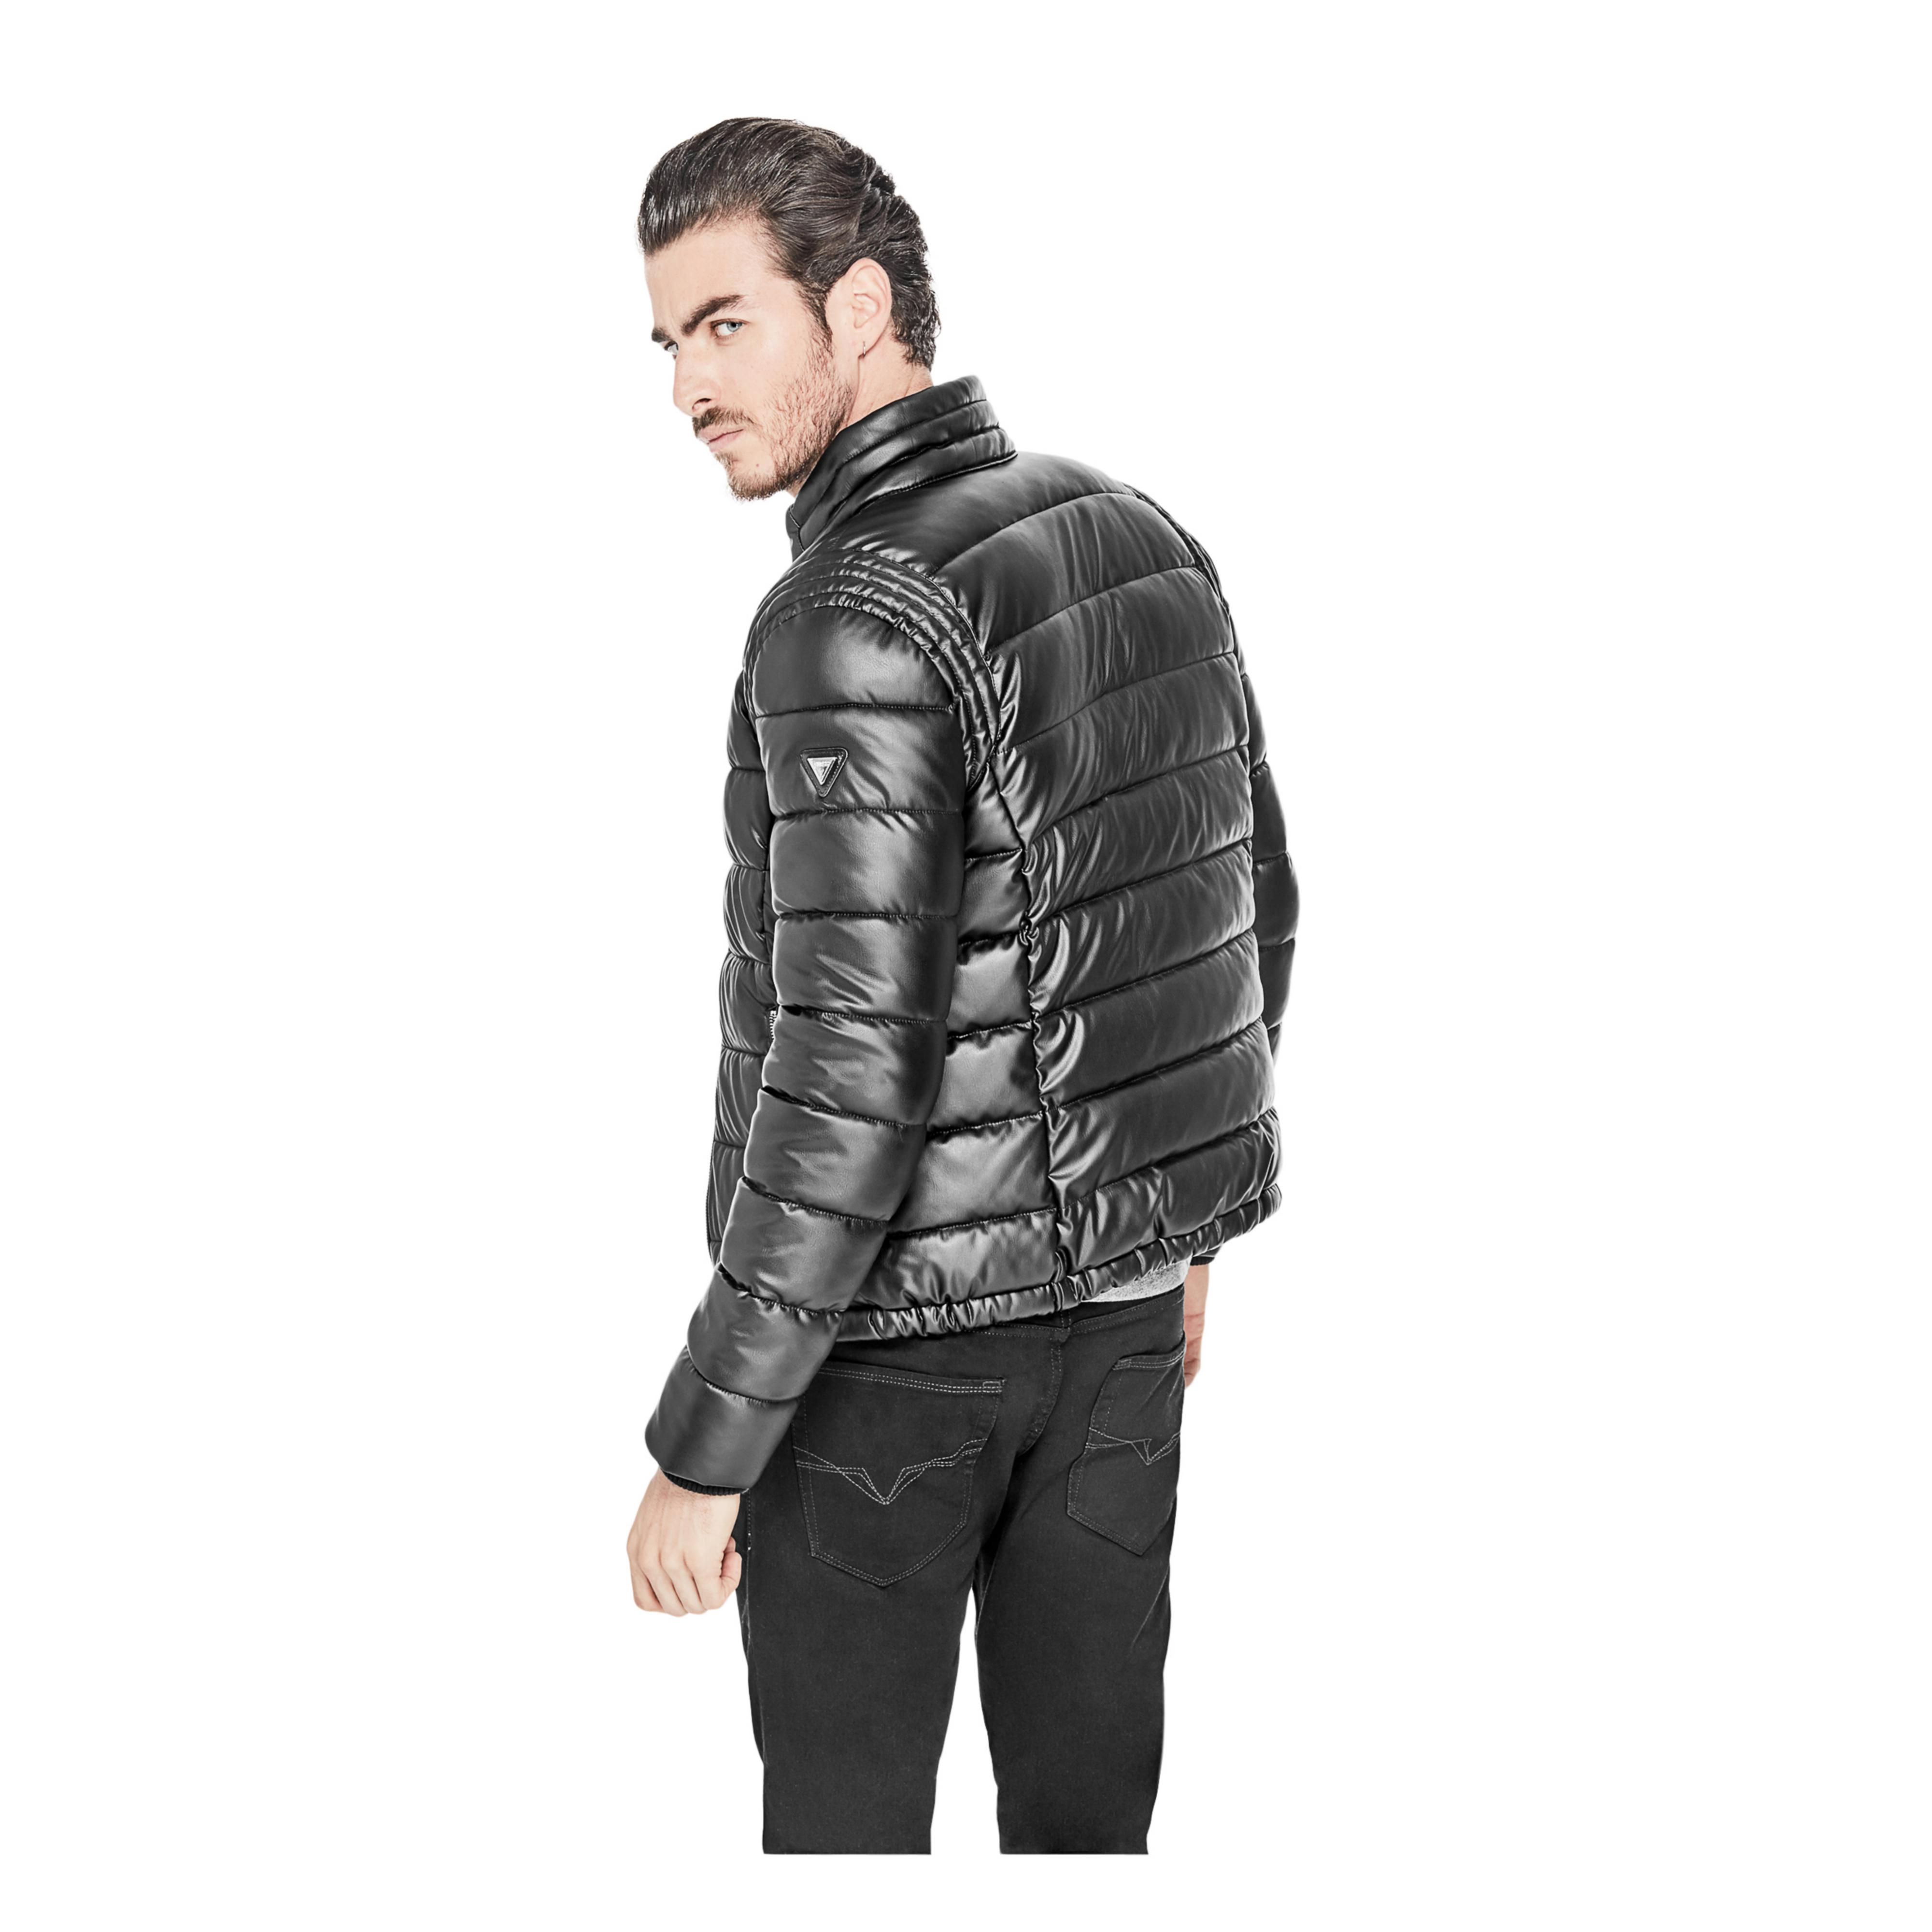 Guess smart stretch jacket in black for men lyst jpg 4000x4000 Guess puffer  vest for men d1b1ab8aae8